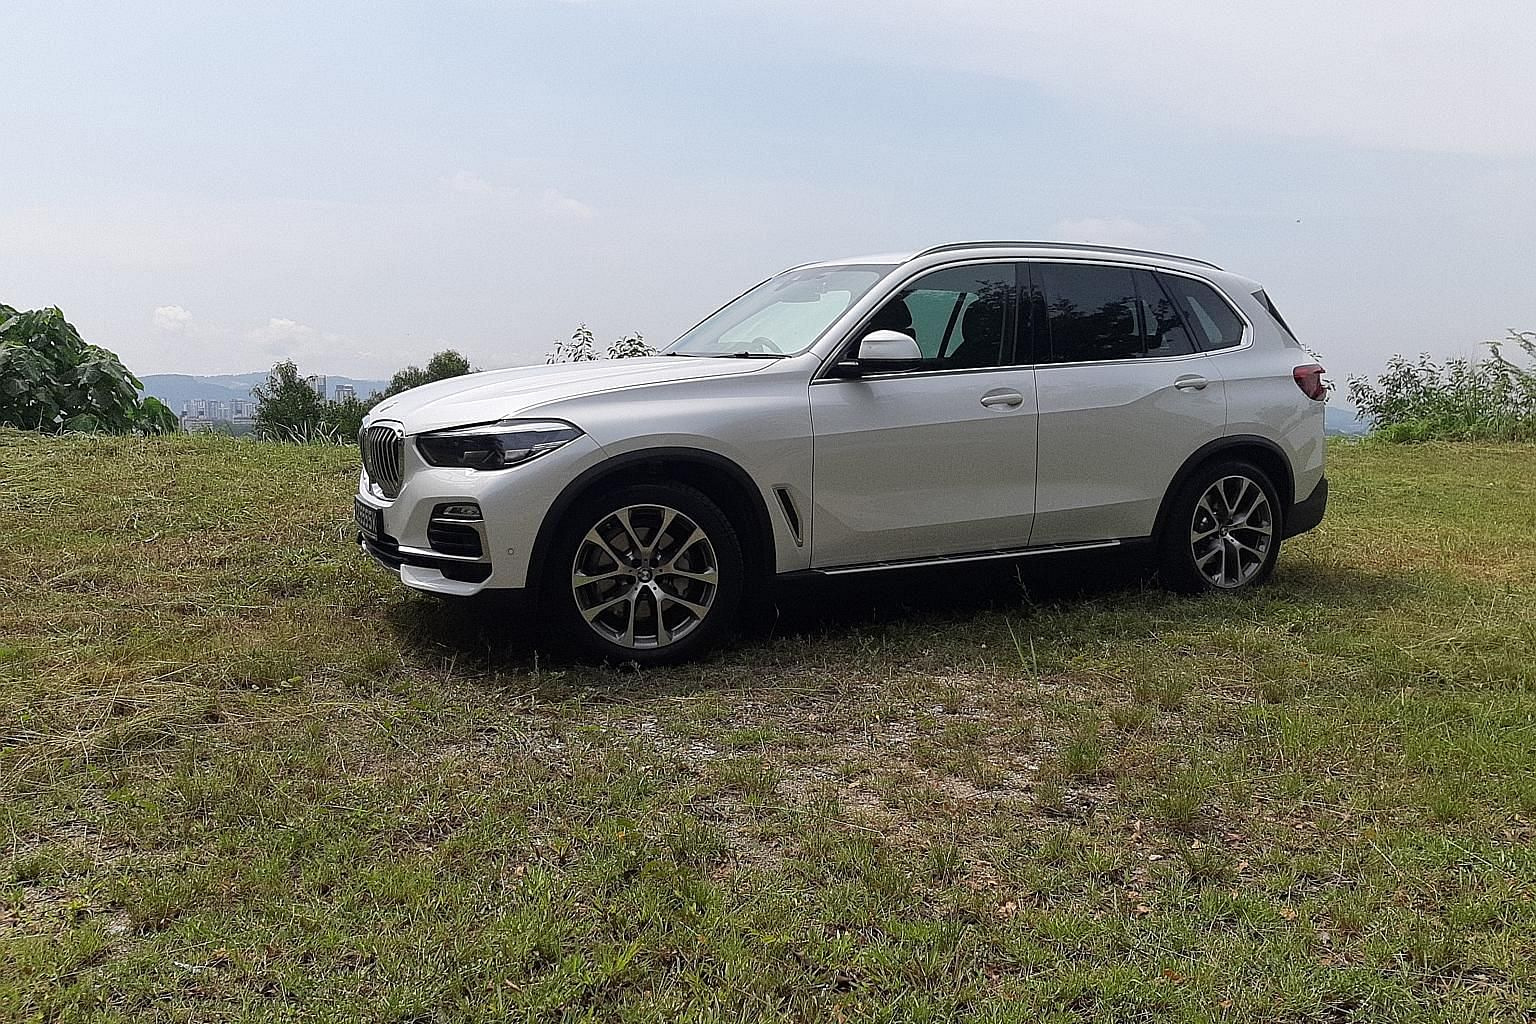 The BMW X5 is now bigger all round, resulting in a more roomy interior.